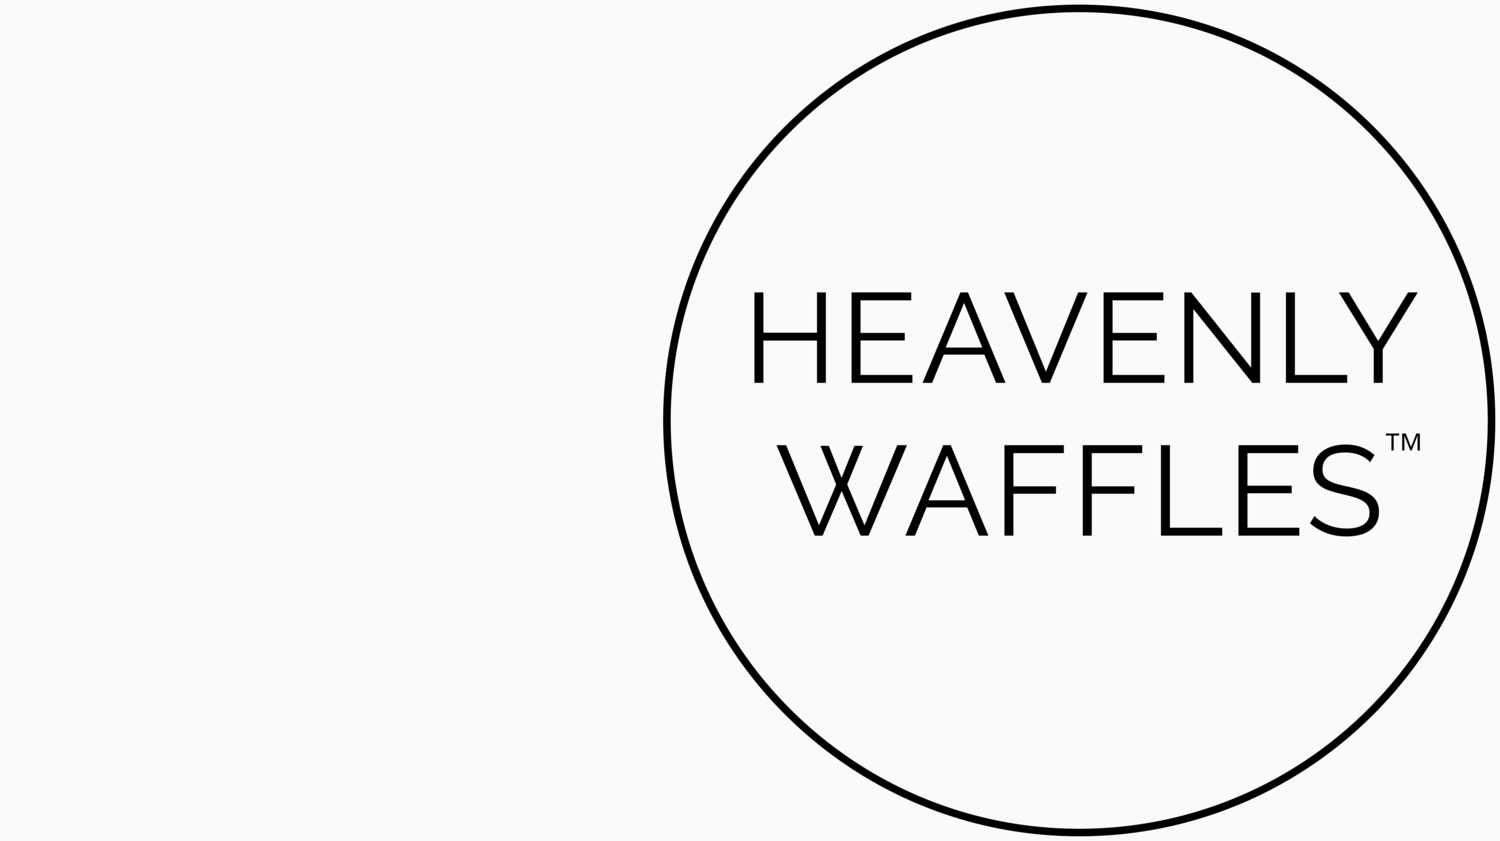 Heavenly Waffles™